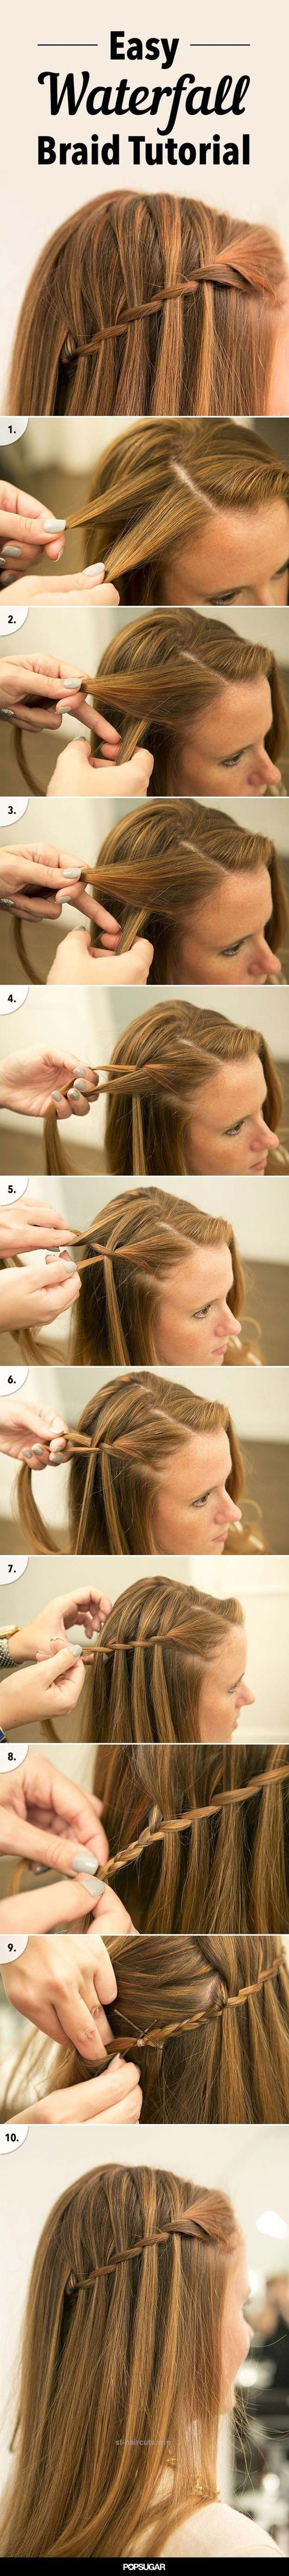 Excellent Best Hairstyles for Long Hair – Waterfall Braid Tutorial- Step by Step Tutorials for Easy Curls, Updo, Half Up, Braids and Lazy Girl Looks. Prom Ideas, Special Occasi ..